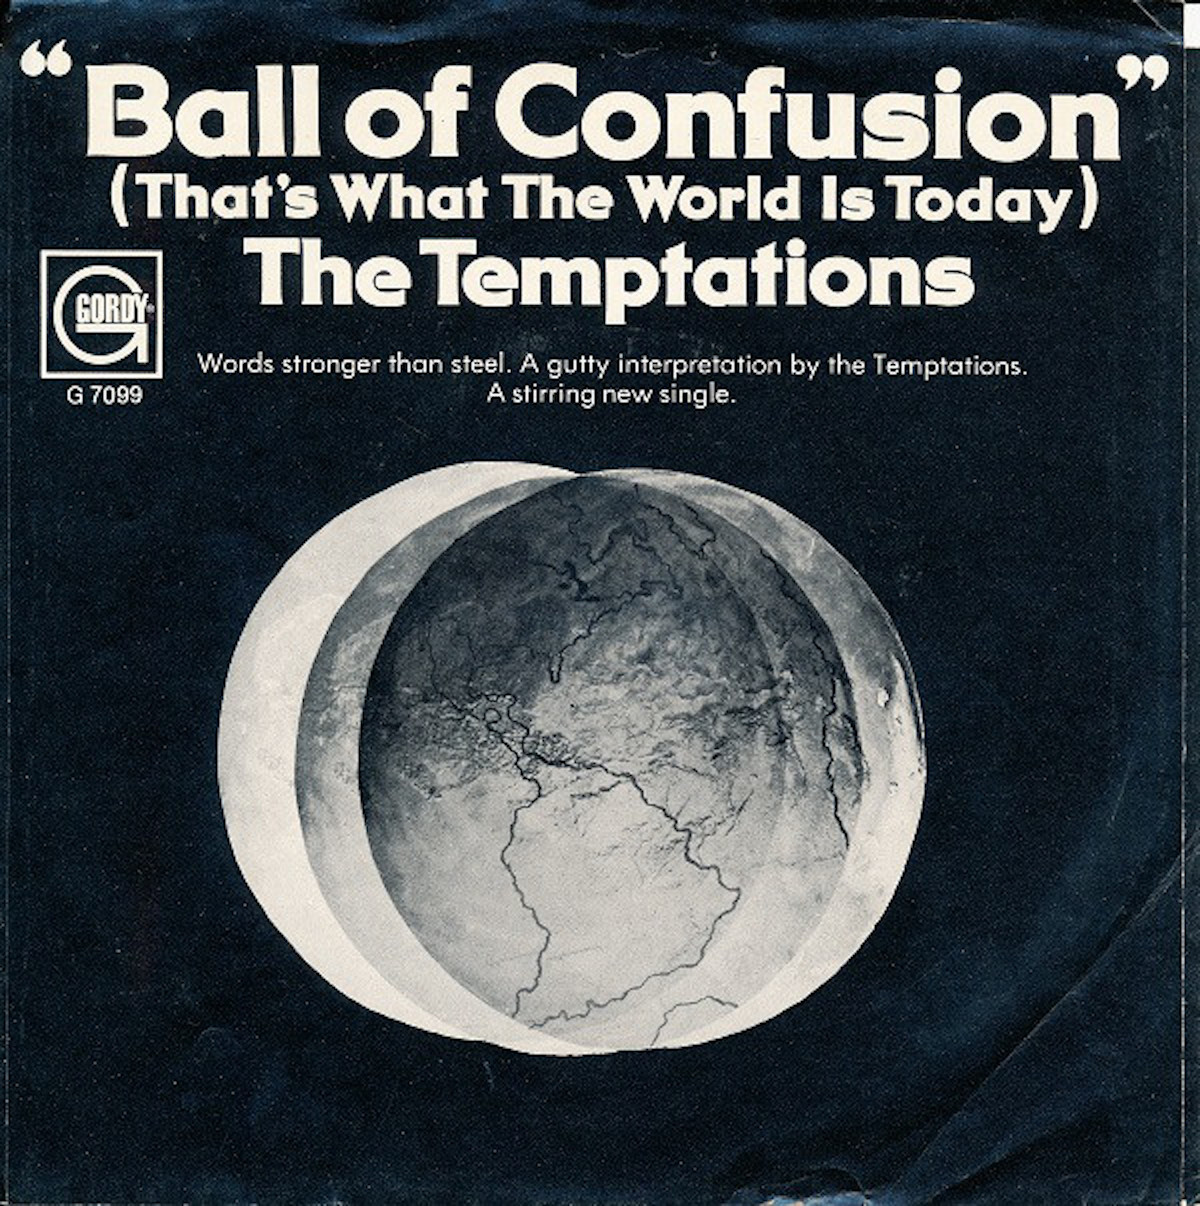 ball of confusion album art, by the temptations